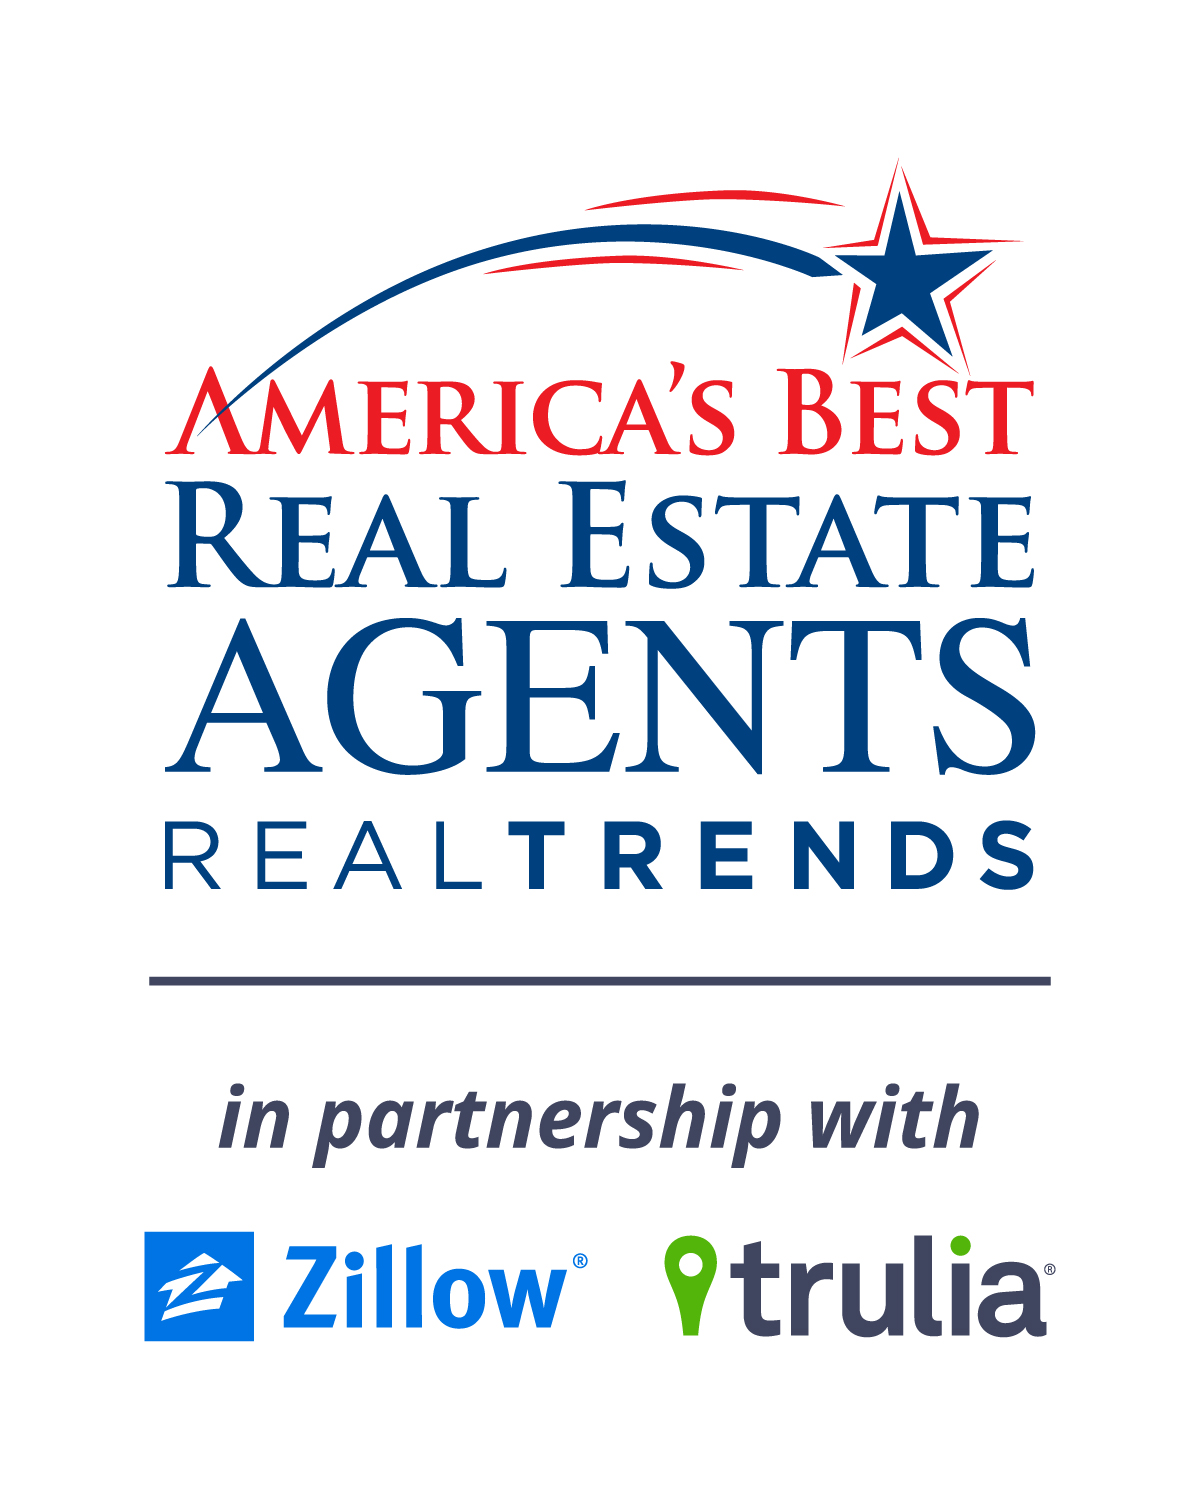 John Beran Recognized as Top 1% of Real Estate Agents in the United States